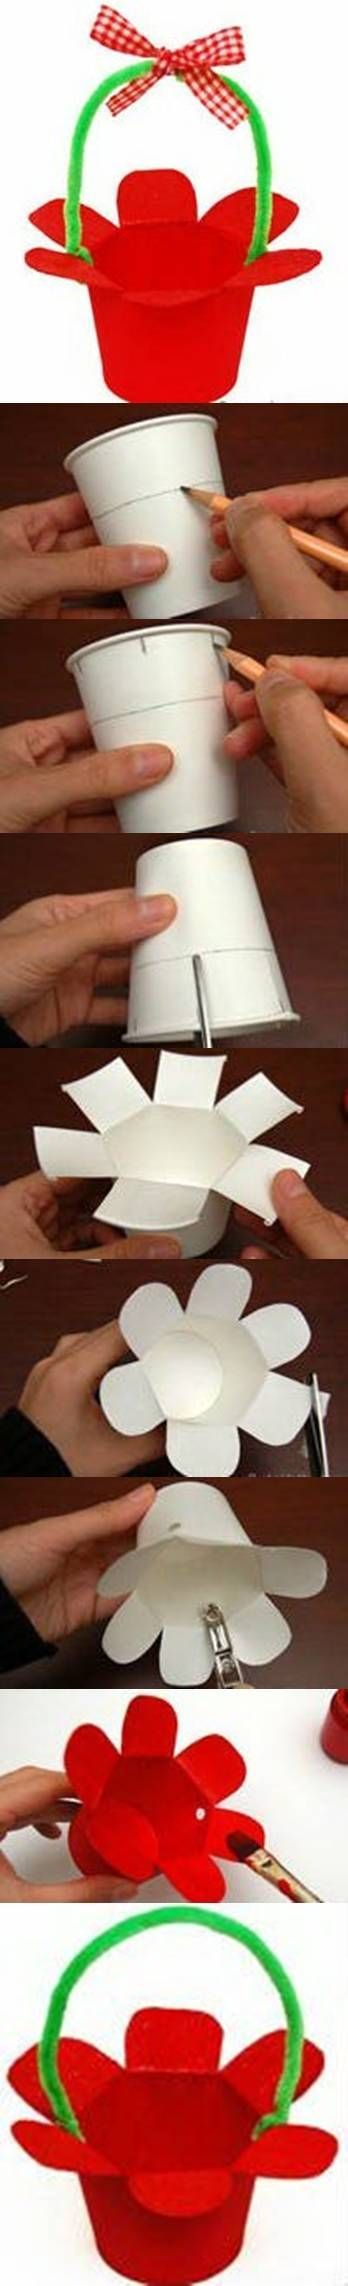 DIY Paper Cup Basket...cute idea for kids at Easter; a craft for them or part of their table setting.: